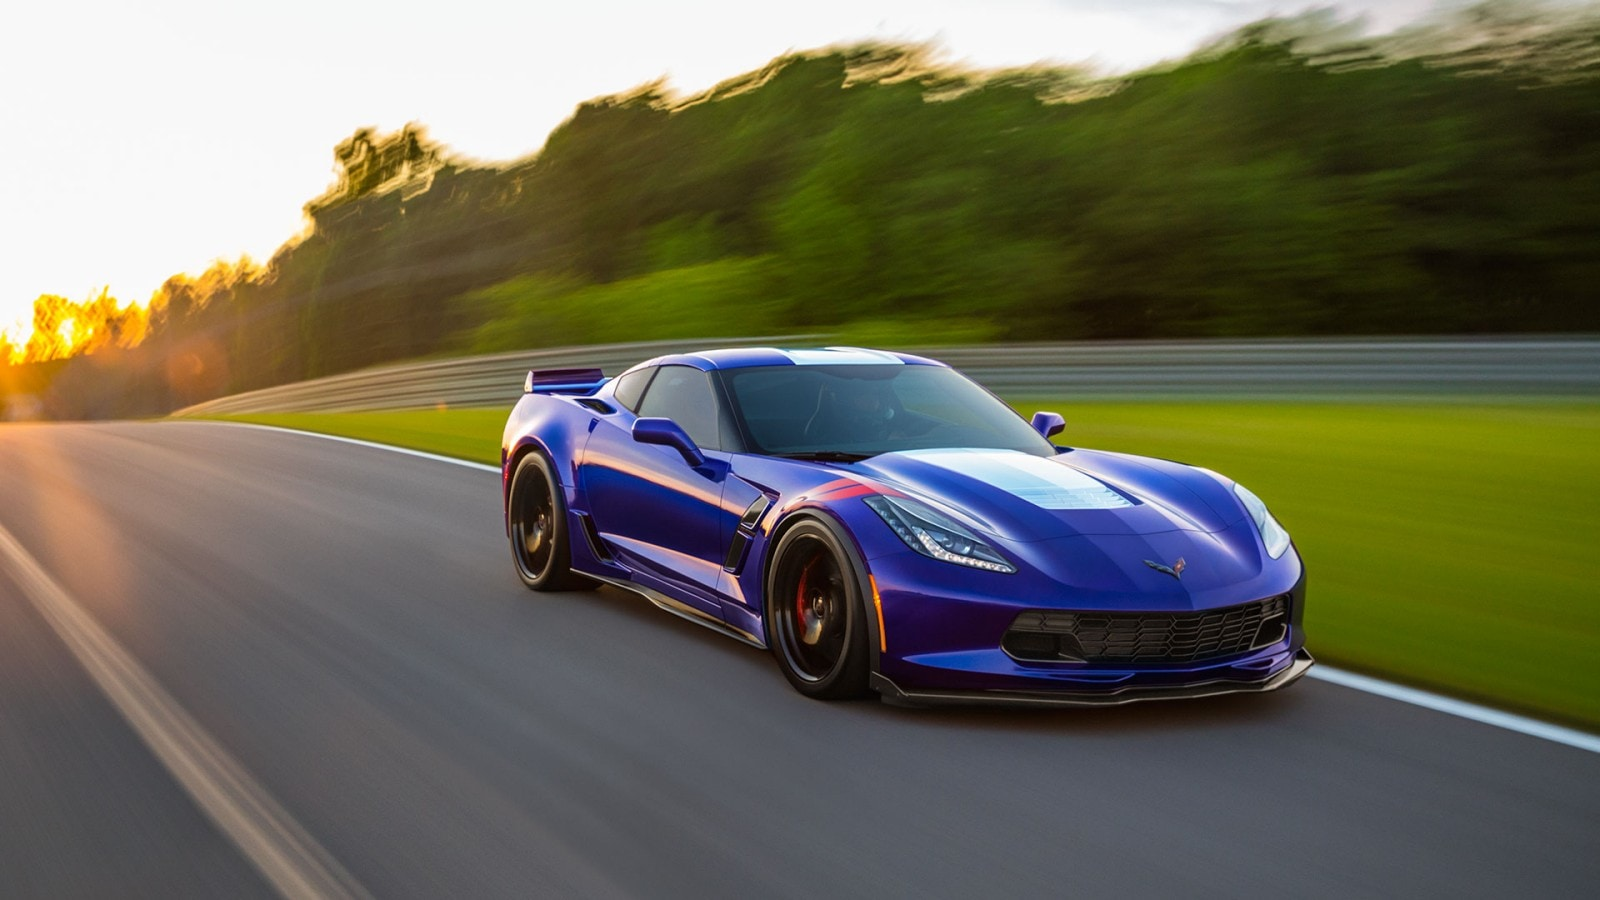 2017 Corvette Grand Sport For Sale In Norman, Oklahoma | Landers Chevrolet  Of Norman